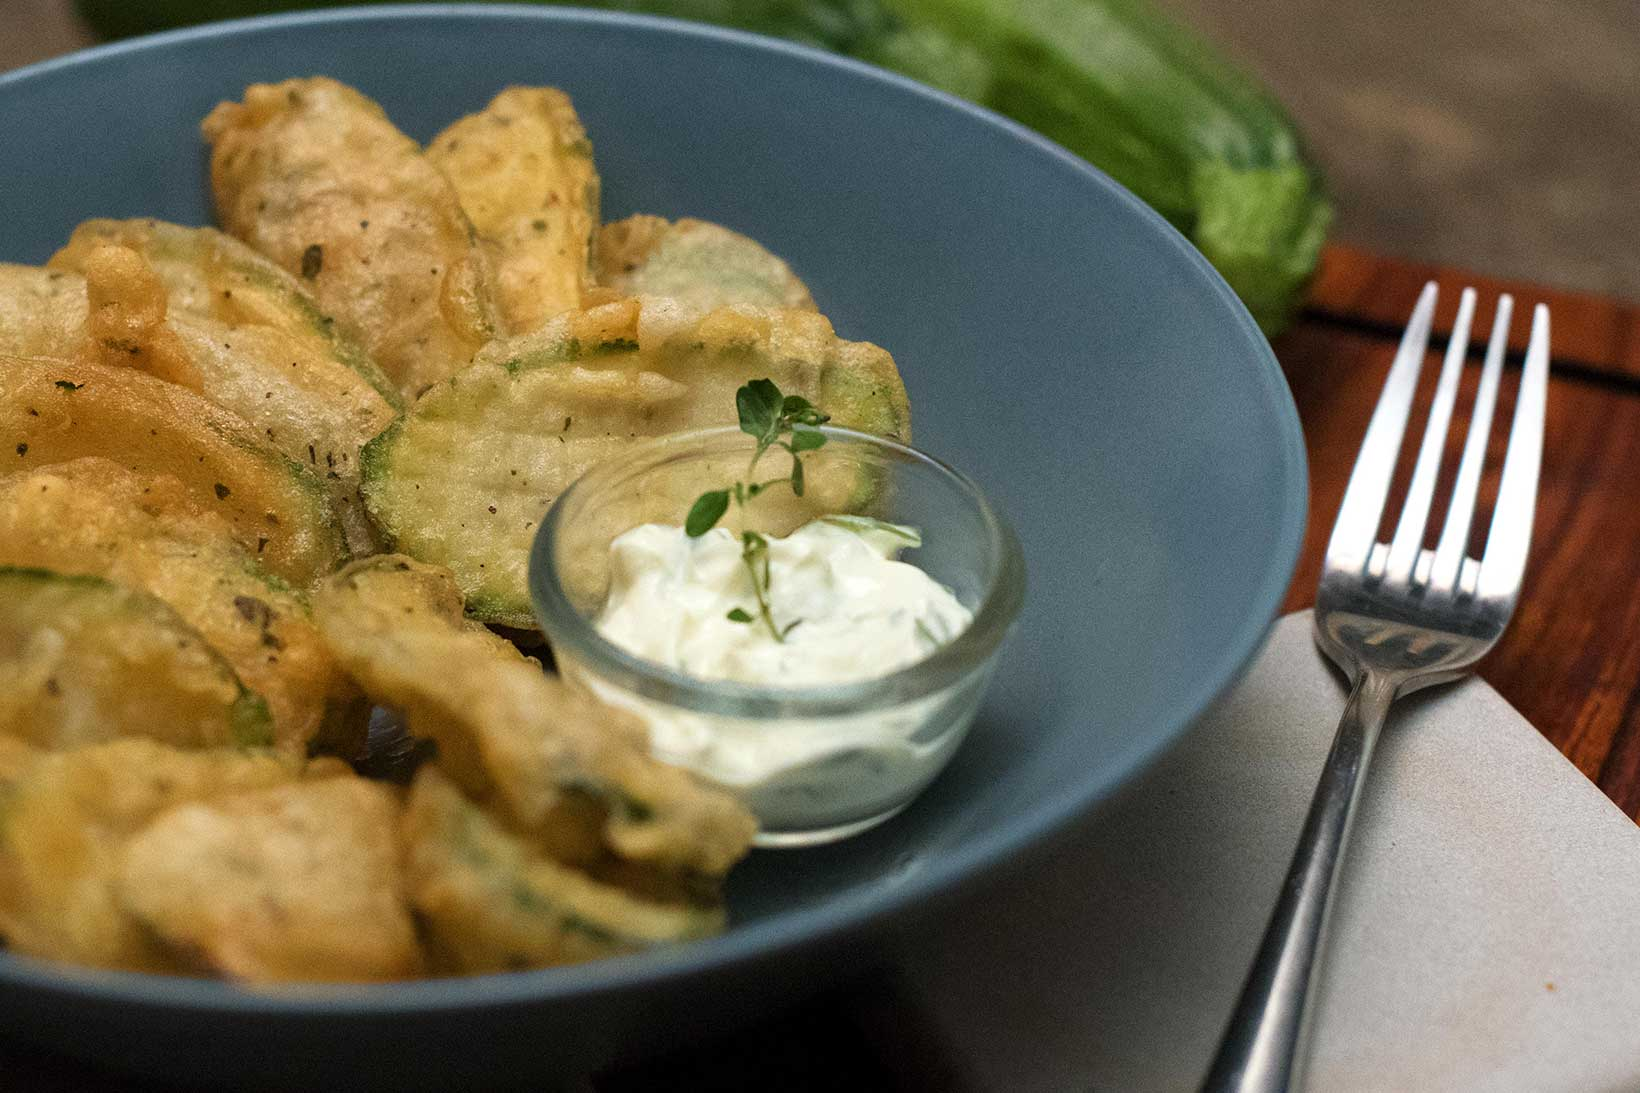 Thinly sliced and lightly battered zucchini slices with tzatziki dipping sauce.